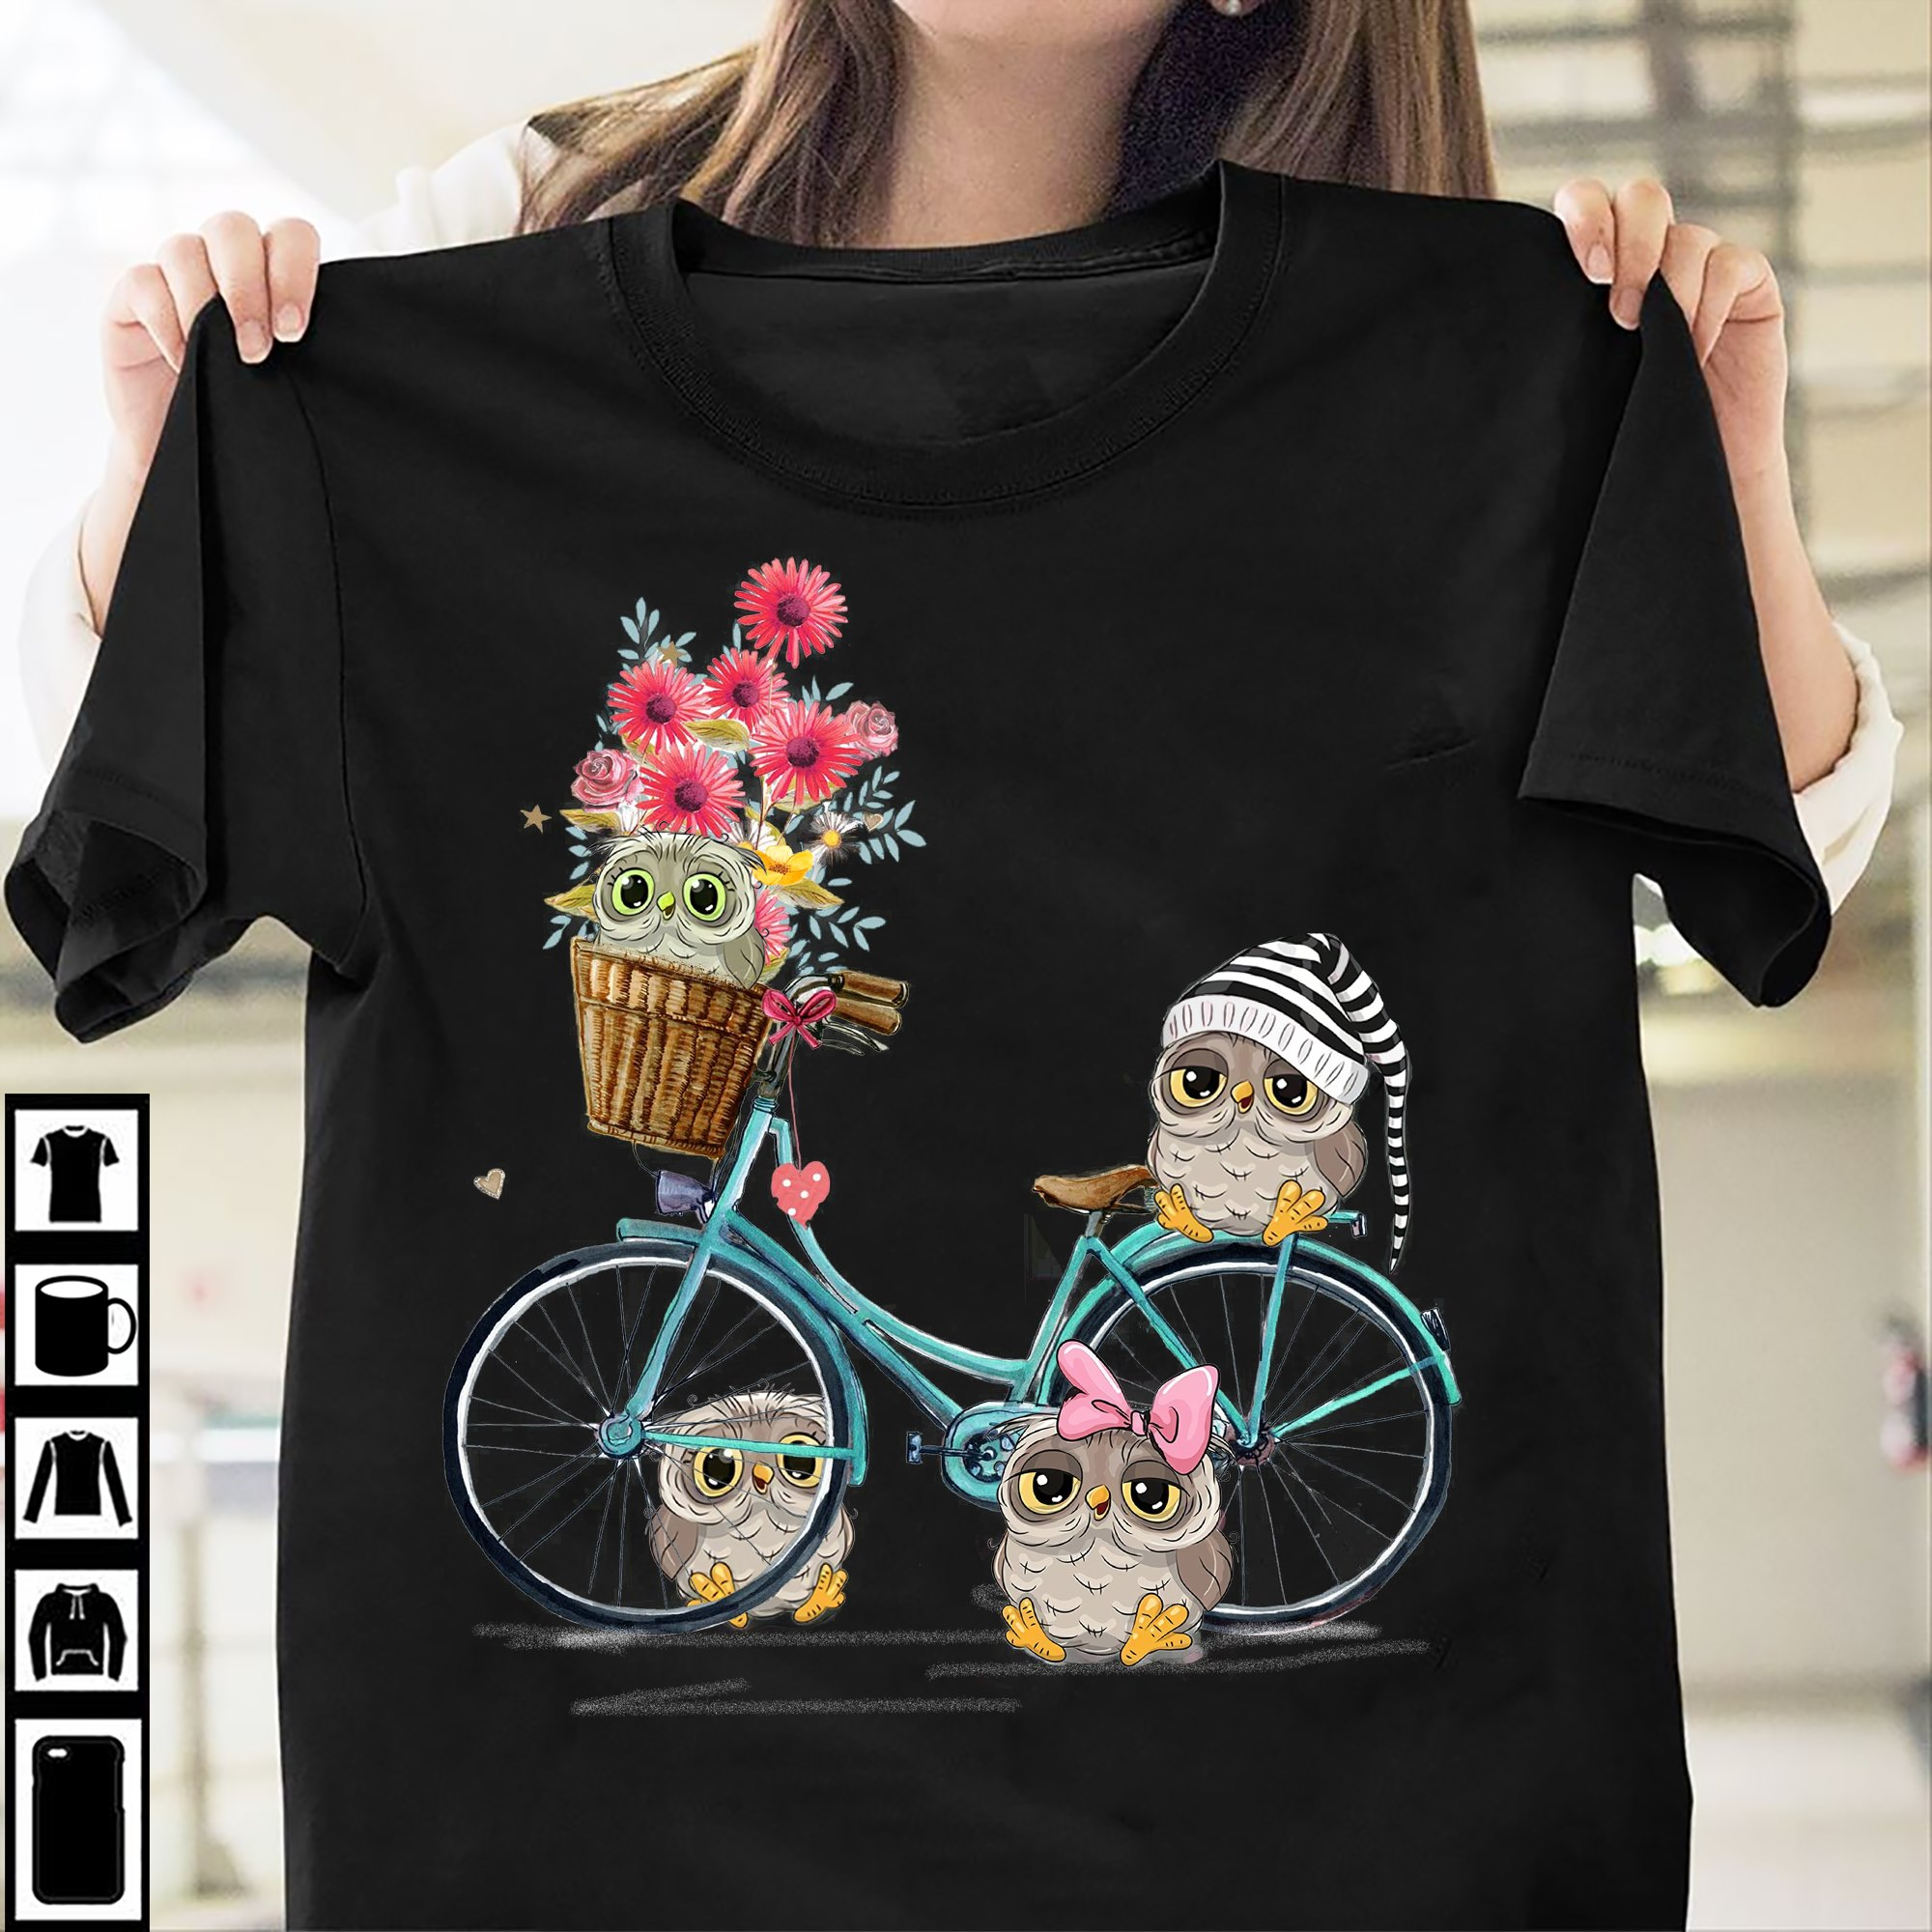 Owl Shirt Daisy Flowers Owls Sitting On The Bicycle